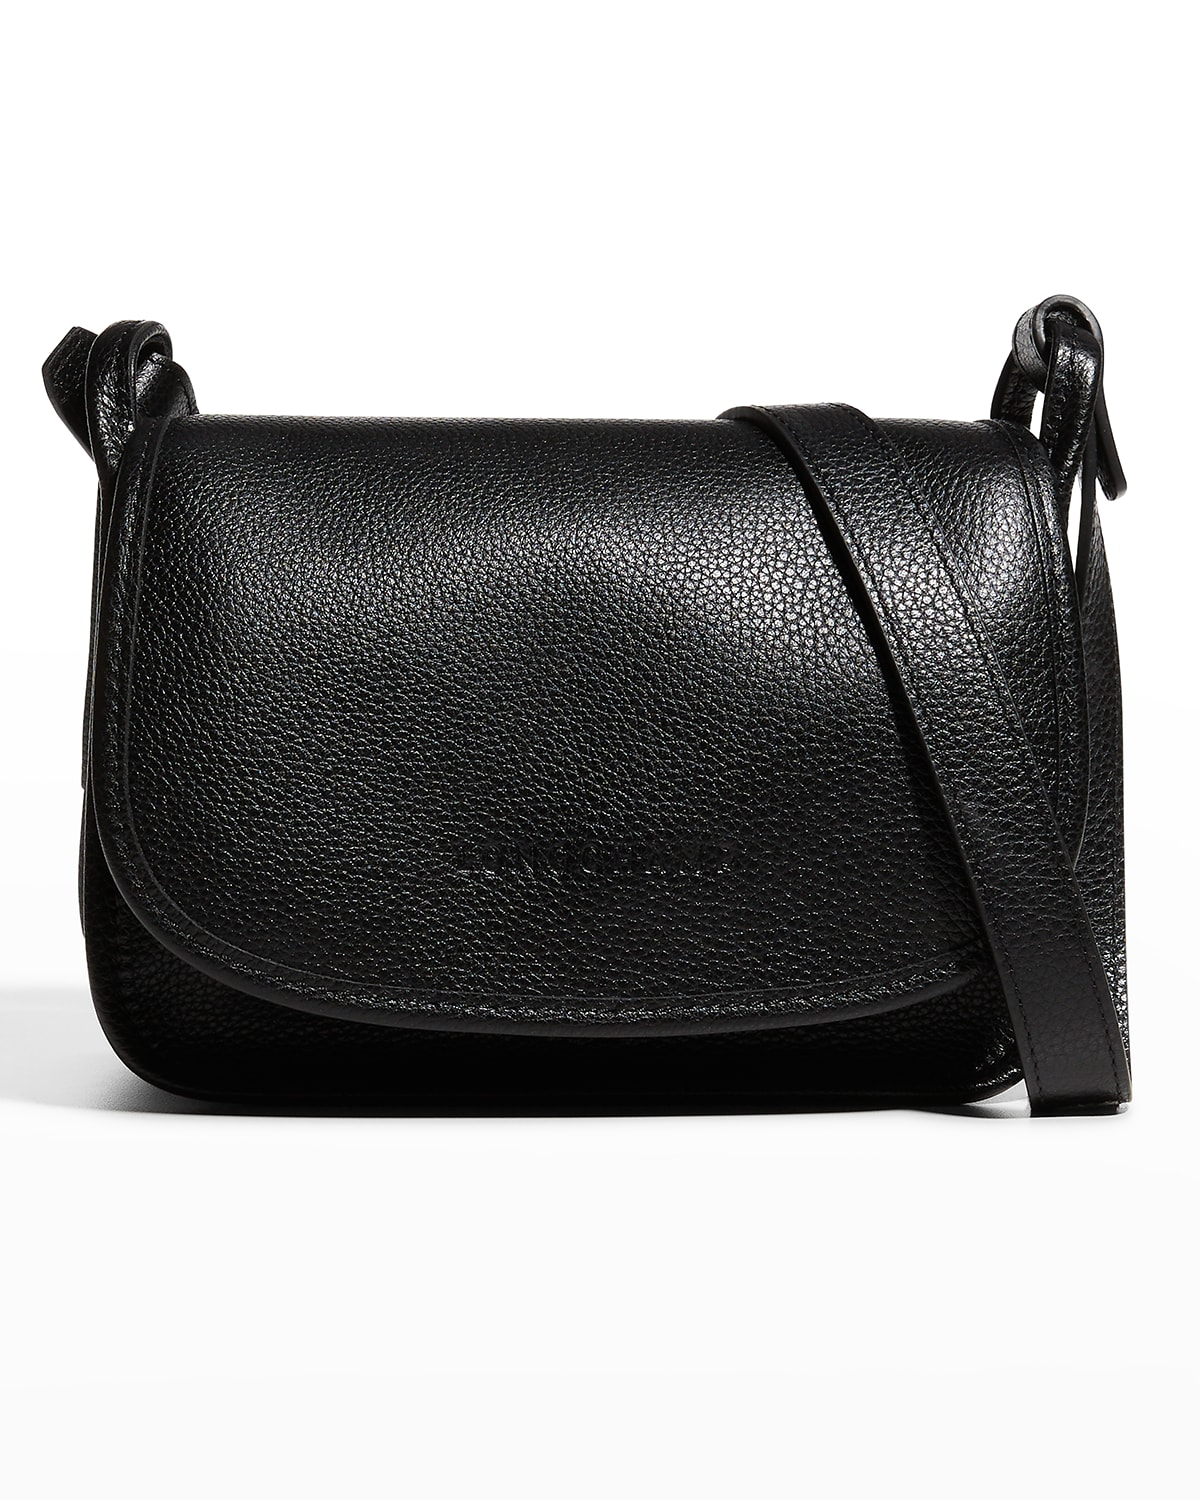 Le Foulonne Small Crossbody With Flap Bag